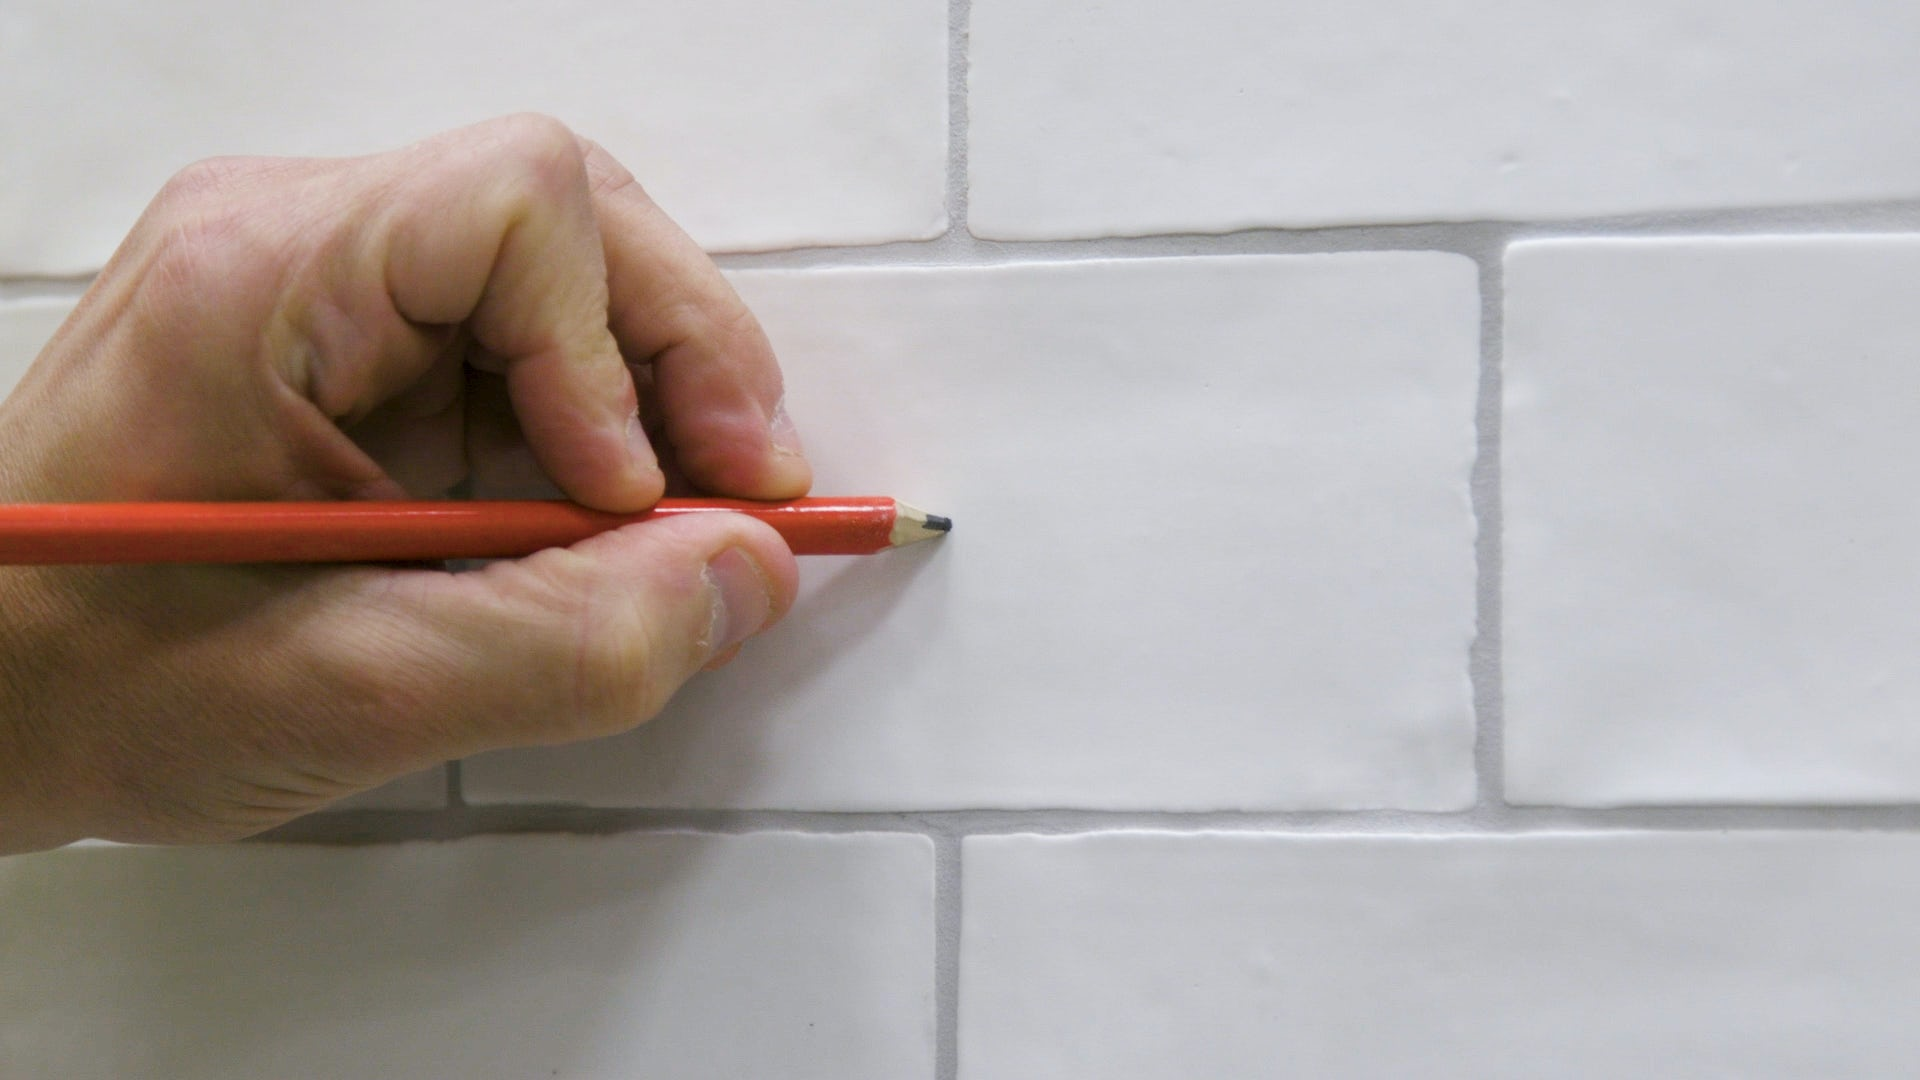 How to drill through tile 2